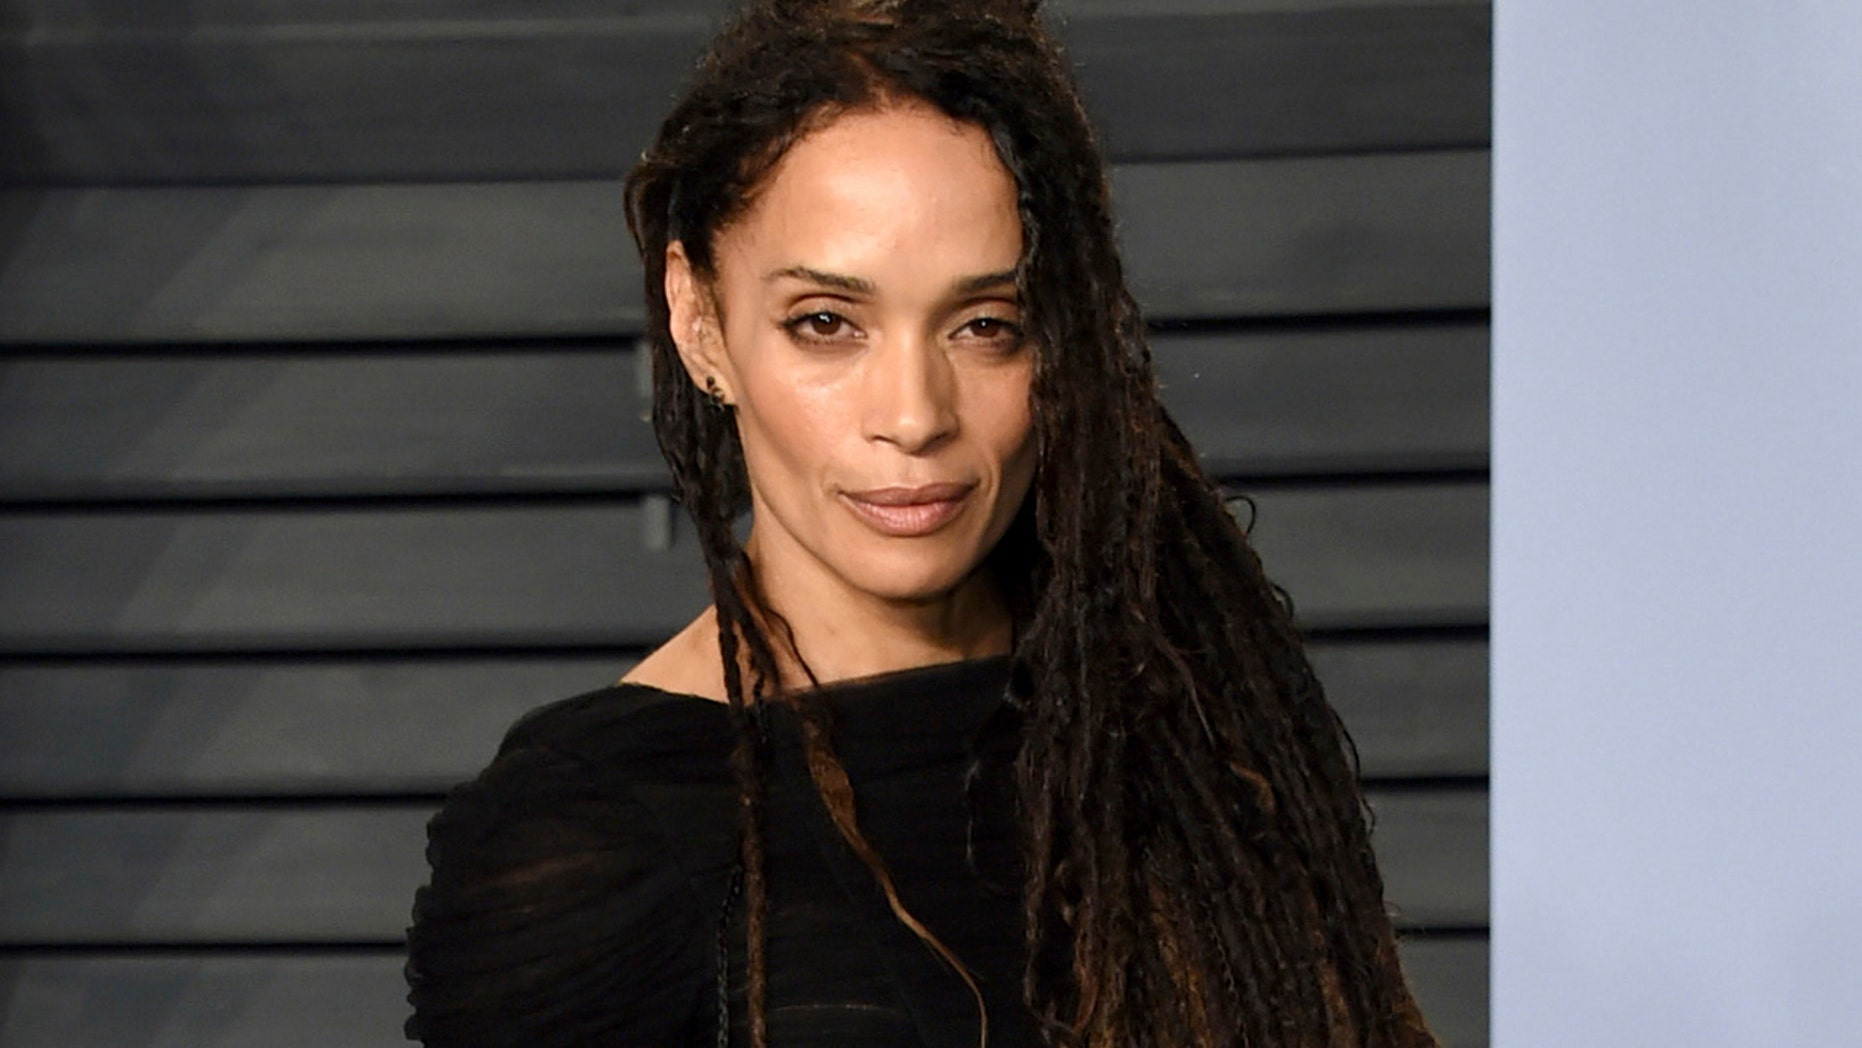 FILE - In this March 4, 2018 file photo, Lisa Bonet arrives at the Vanity Fair Oscar Party in Beverly Hills, Calif.